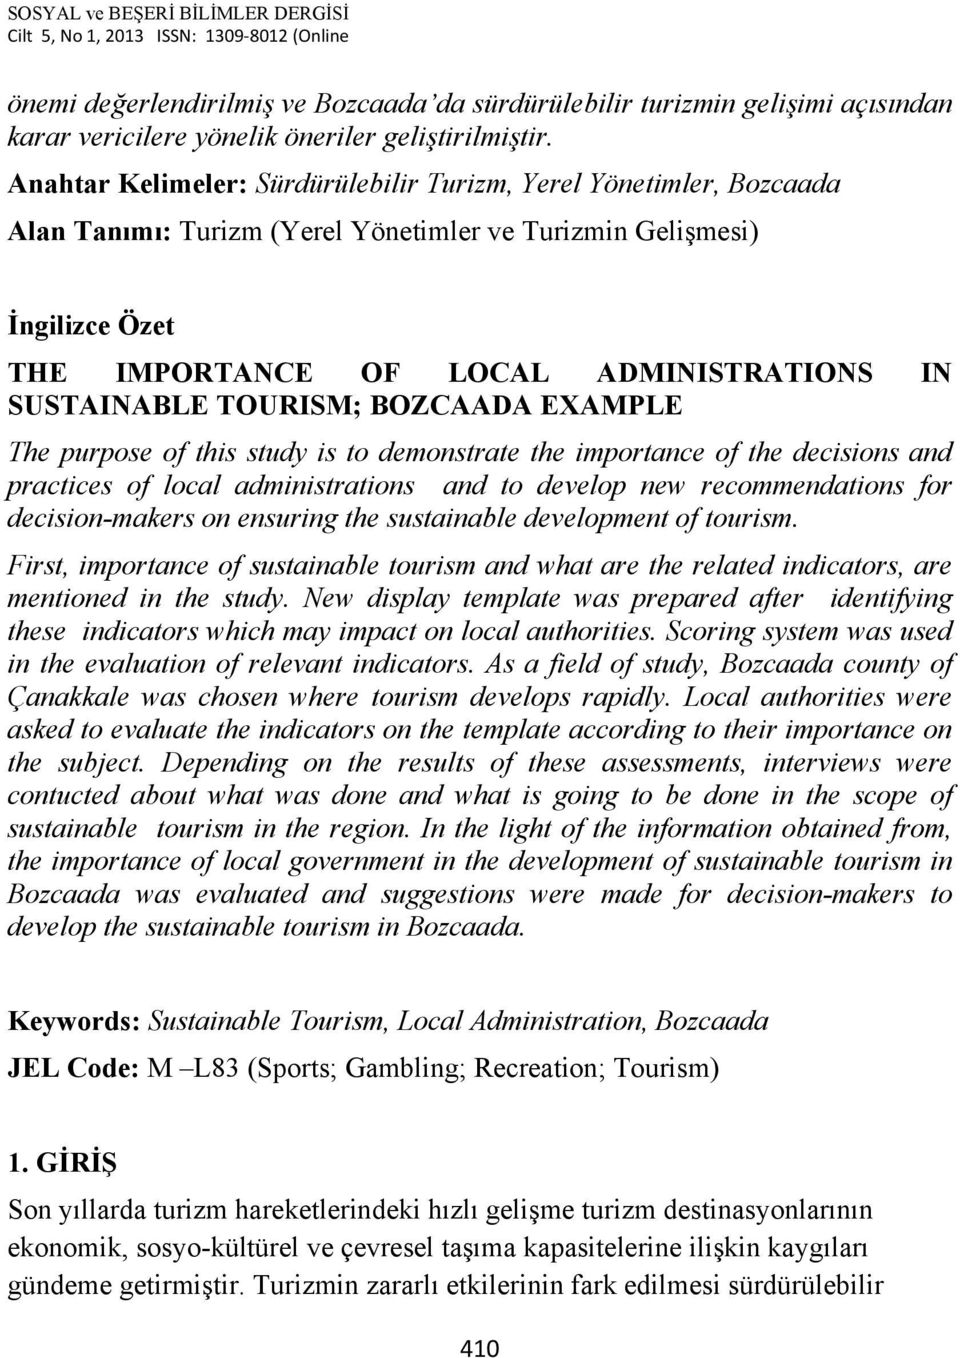 TOURISM; BOZCAADA EXAMPLE The purpose of this study is to demonstrate the importance of the decisions and practices of local administrations and to develop new recommendations for decision-makers on